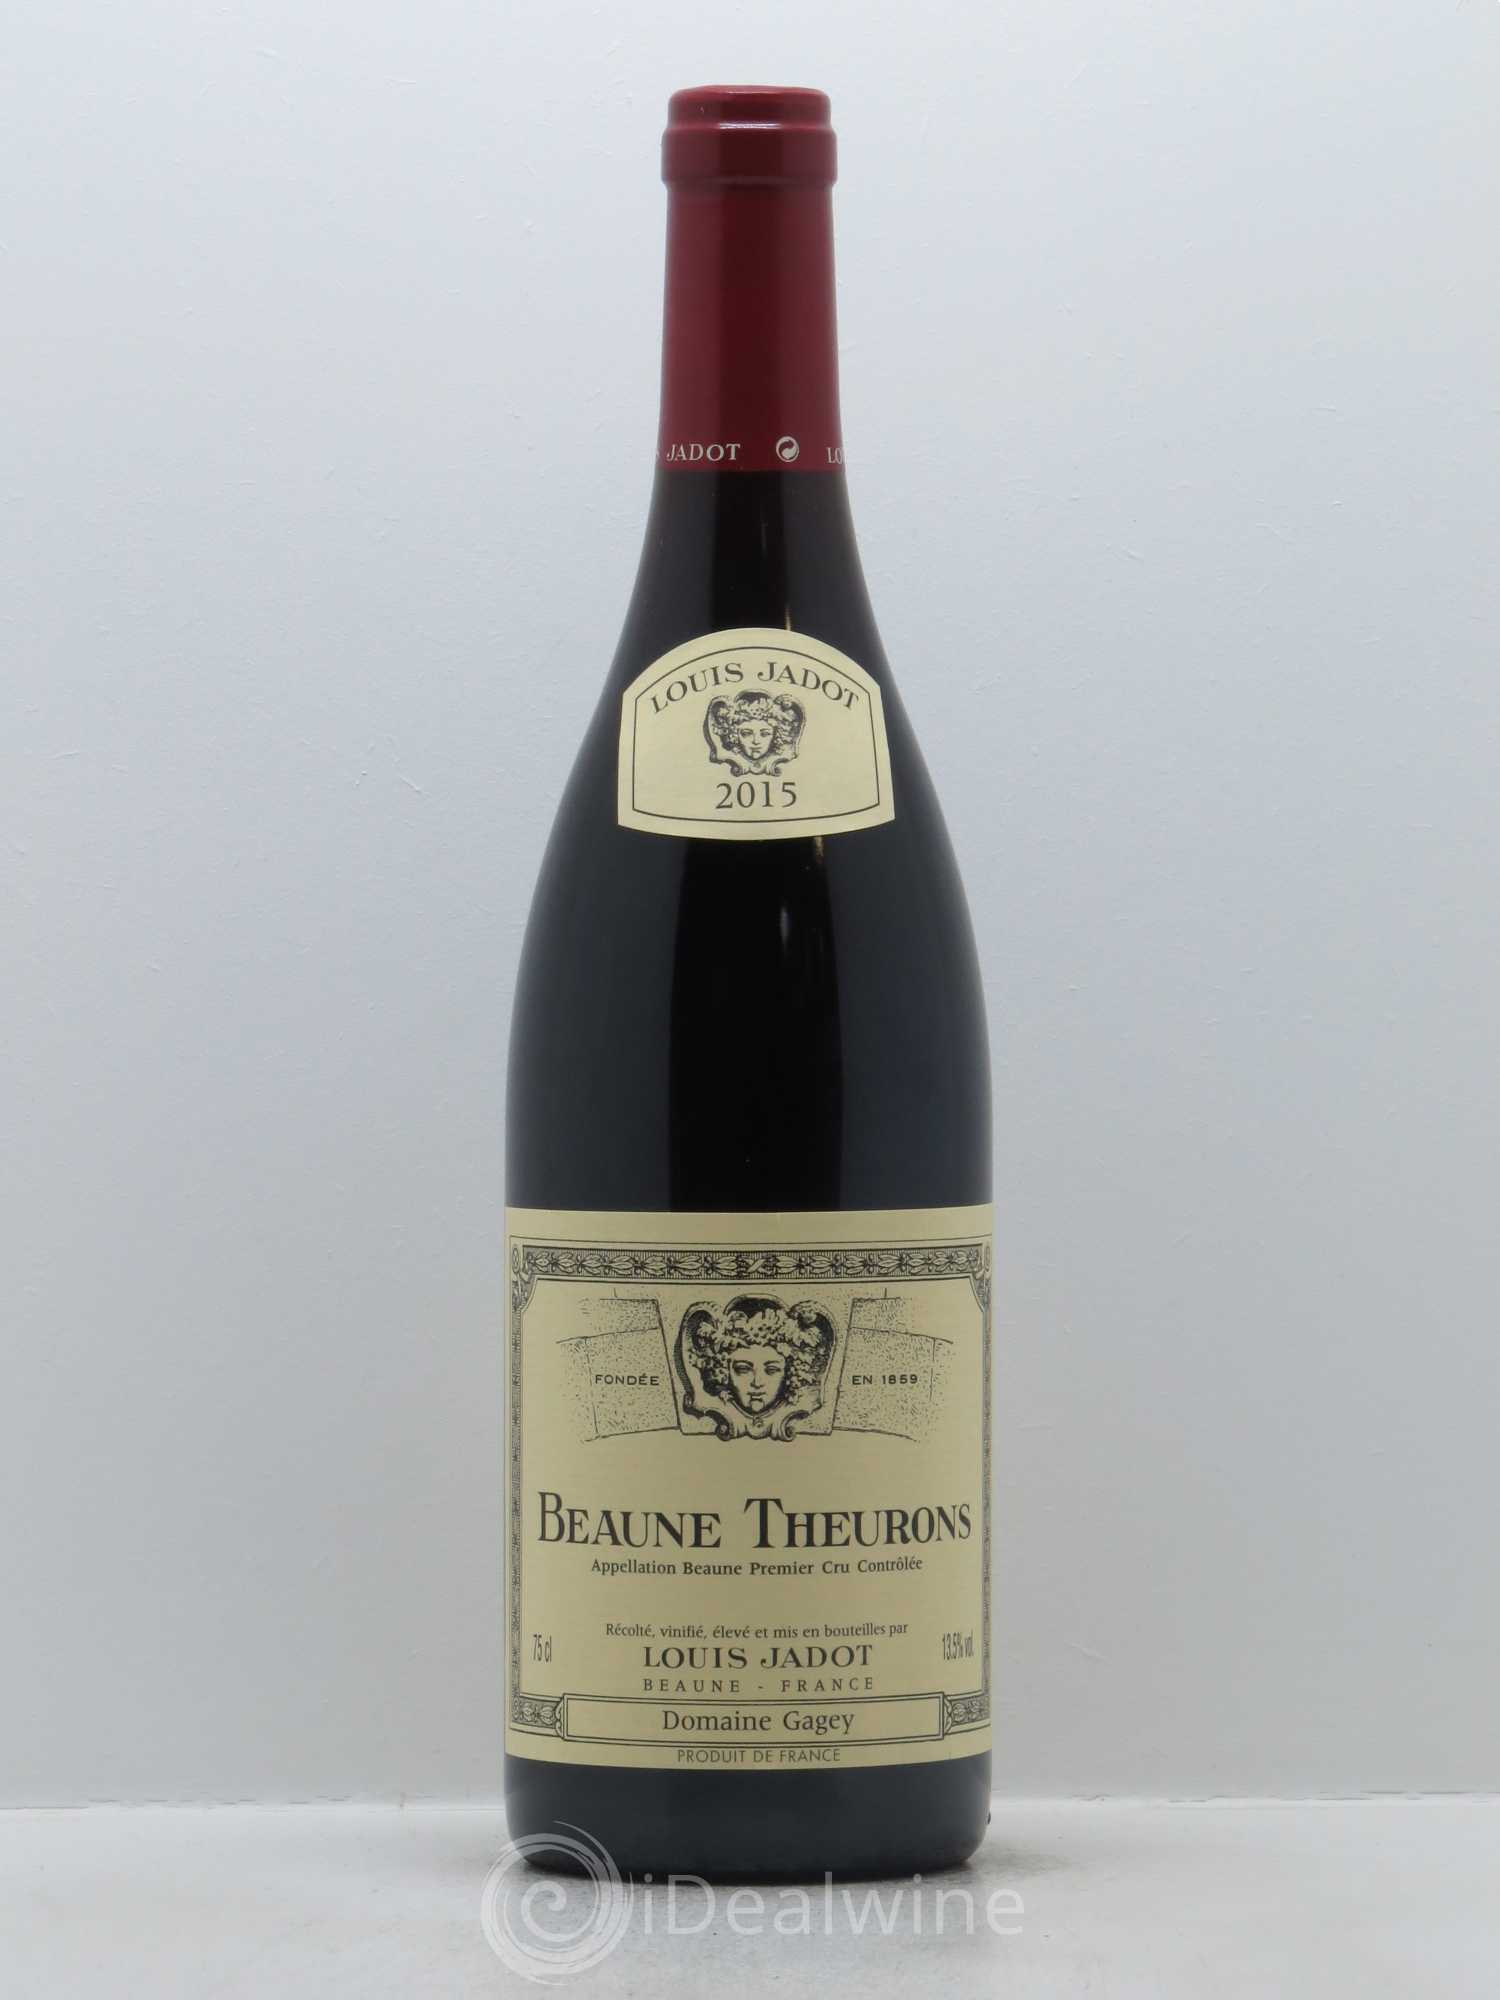 Beaune 1er Cru Les Theurons Domaine Gagey - Louis Jadot